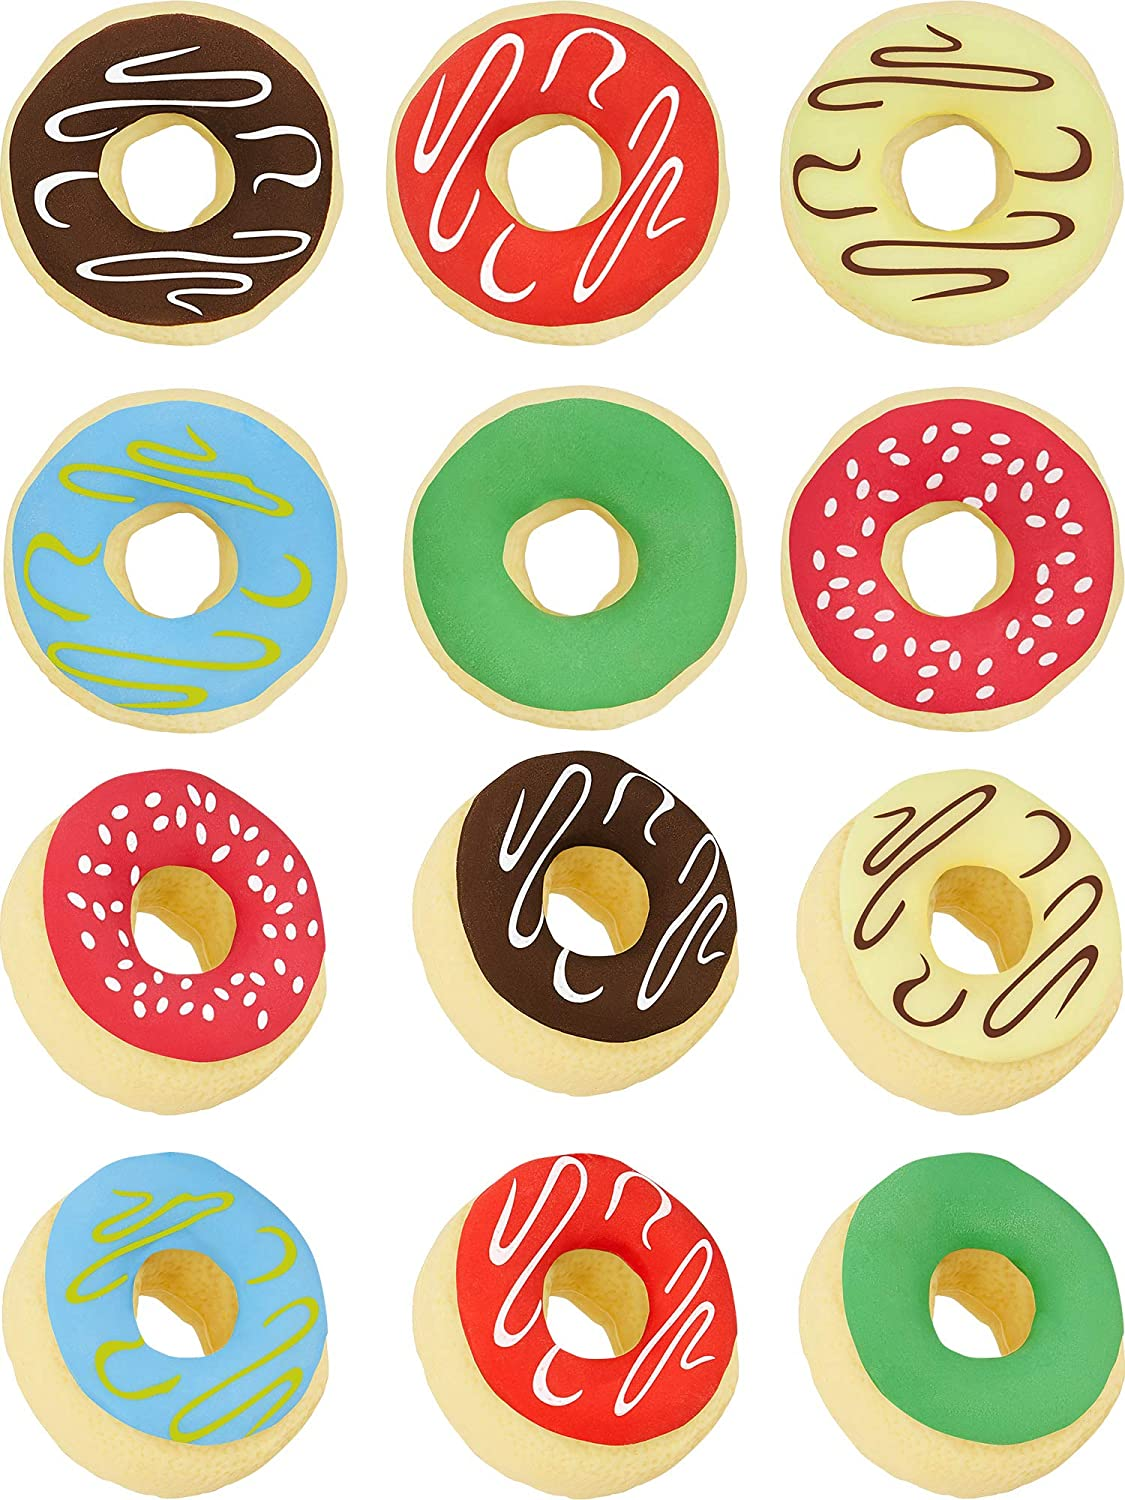 12 Pieces Donuts Erasers Food Erasers Donuts Pencil Erasers for Kids Reward Children School Supplies and Party Favors, Multi-designs